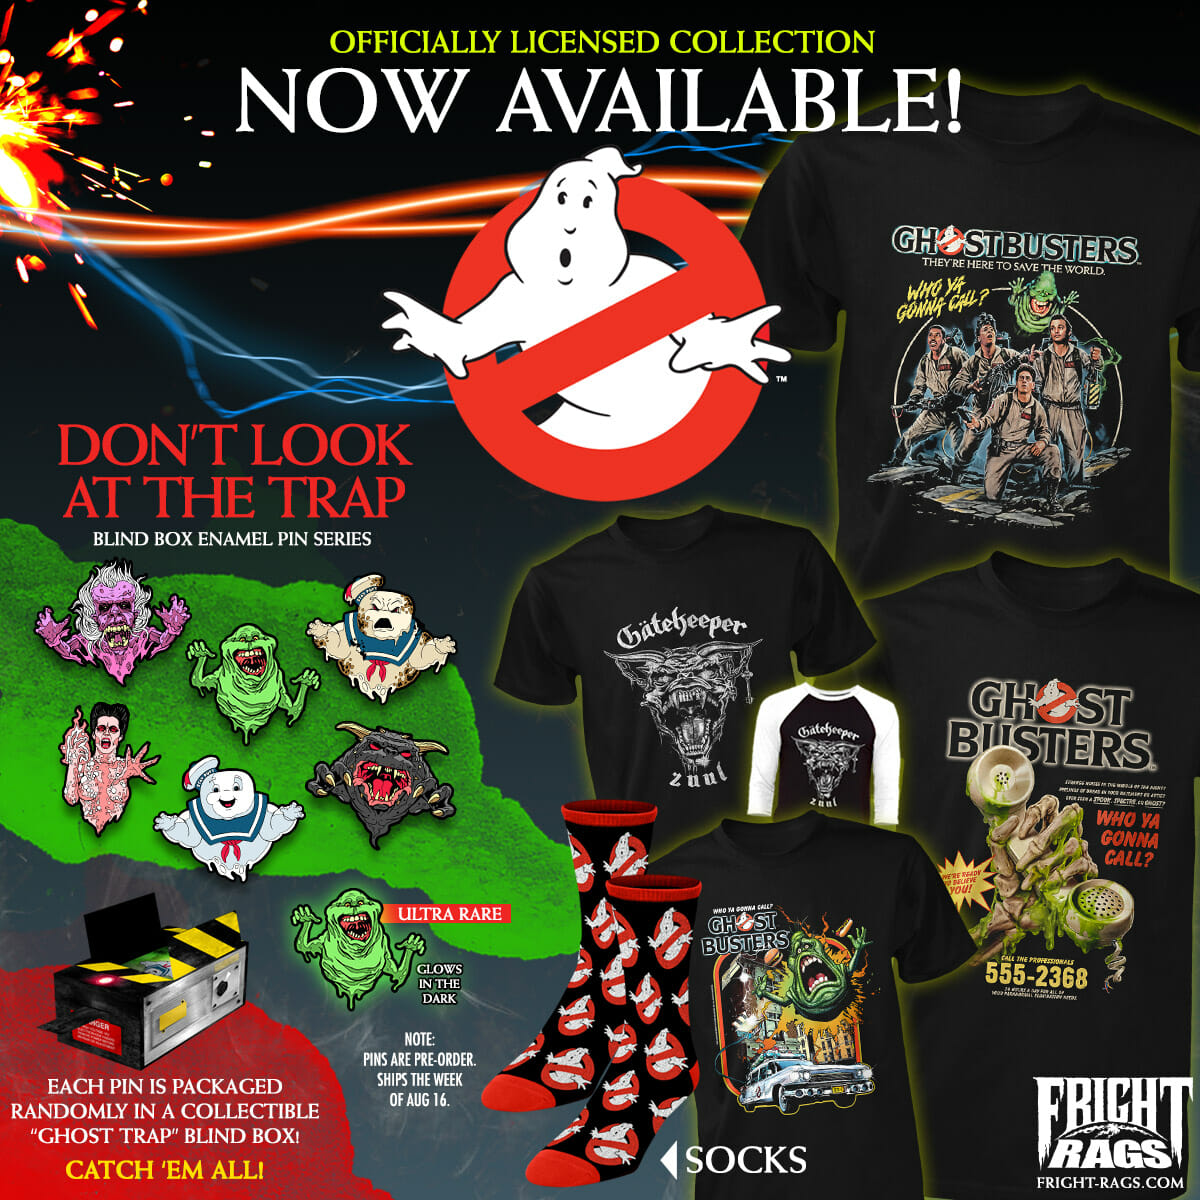 Who Ya Gonna Call? GHOSTBUSTERS, THE DEVIL'S REJECTS, UHF